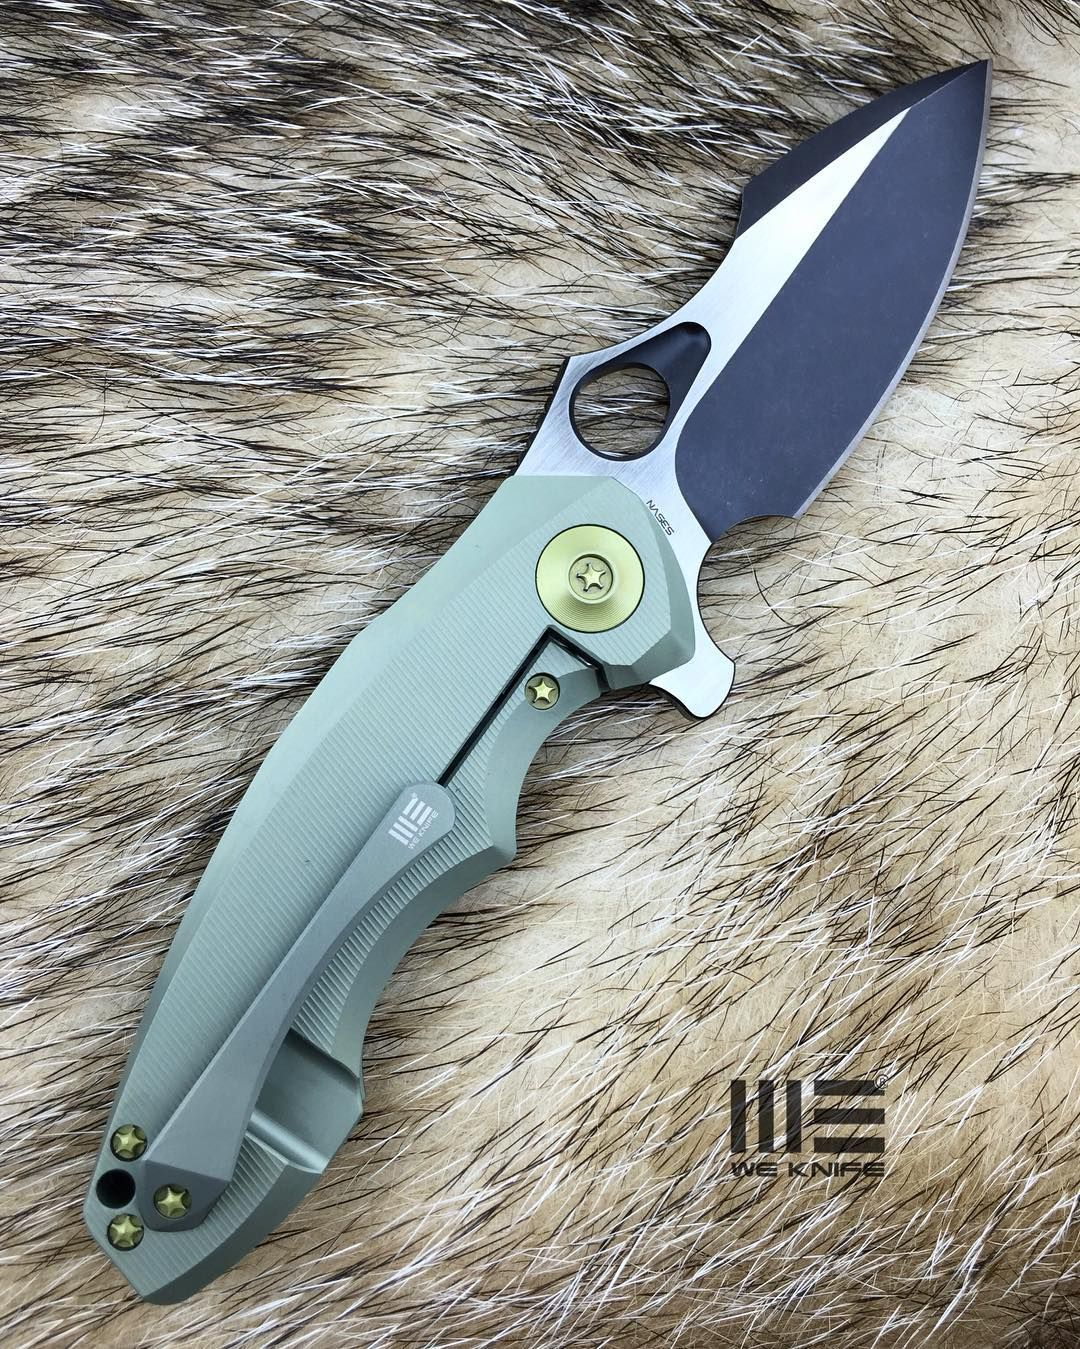 Pin by Antares on On the edge of the Blade Pinterest Knives and